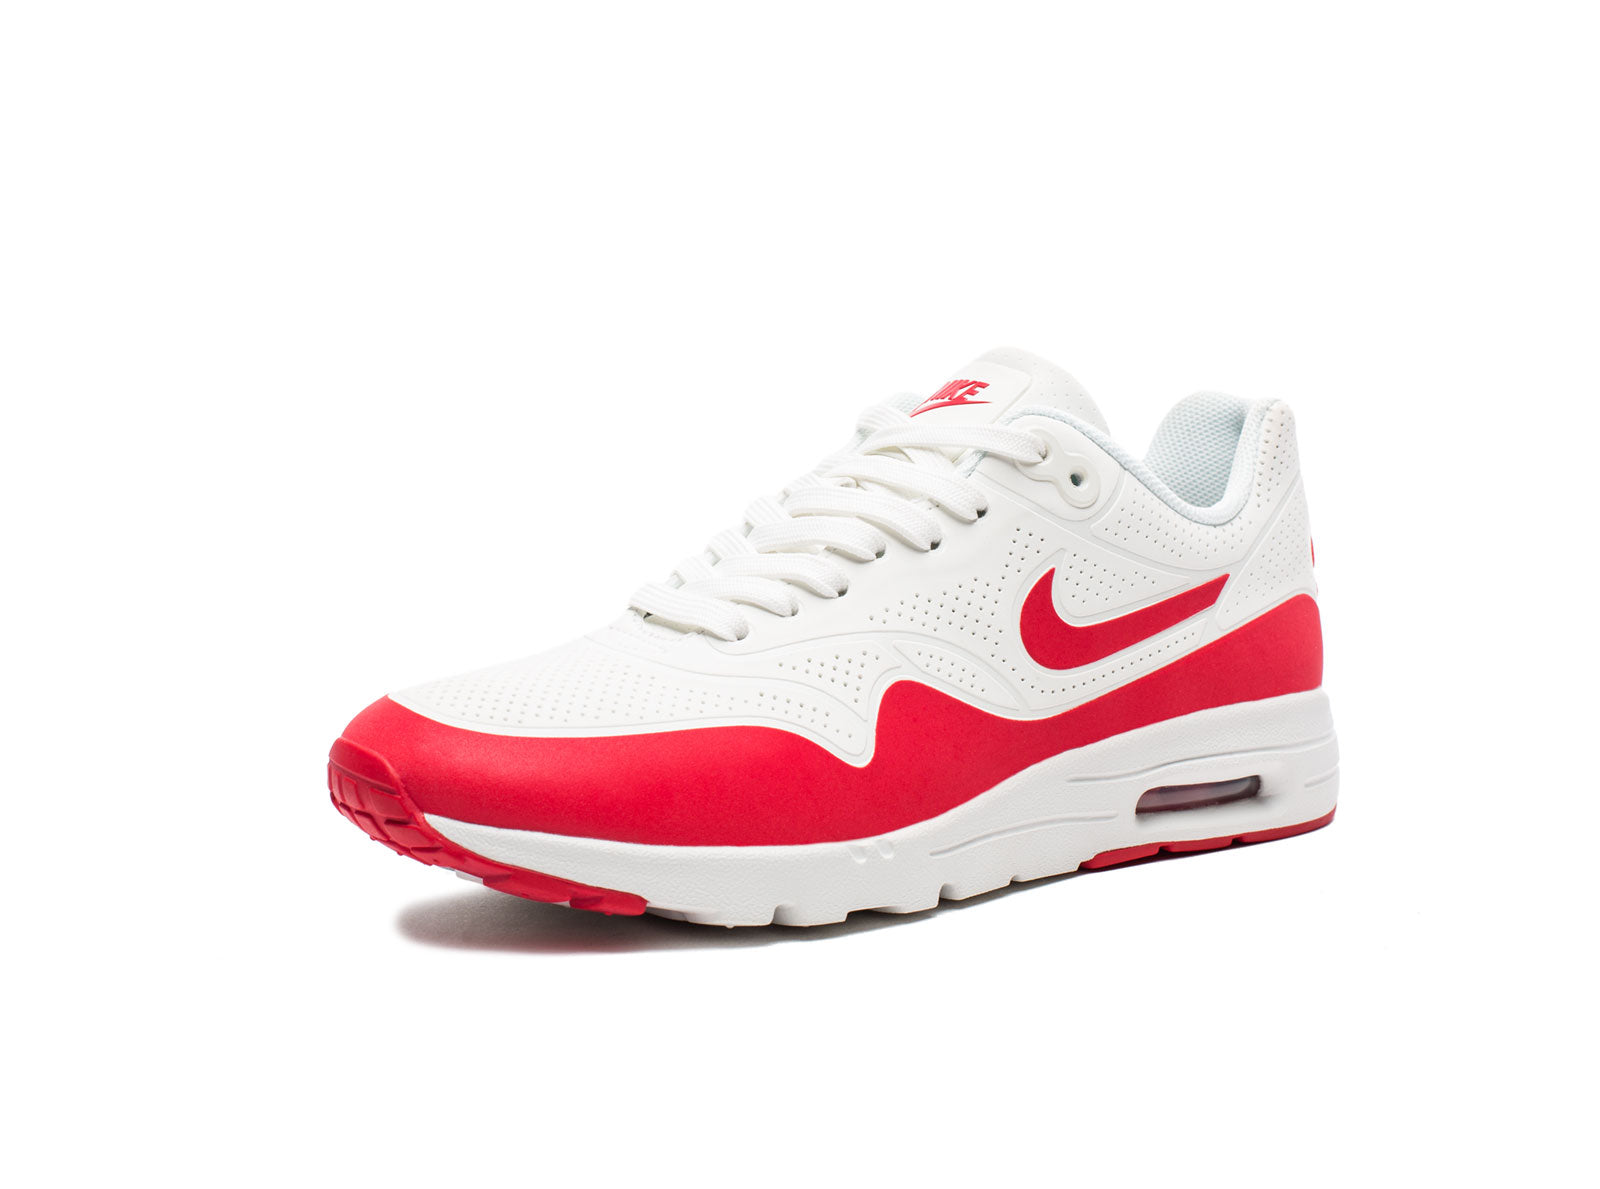 WOMEN'S AIR MAX 1 ULTRA MOIRE -SUMMIT WHITE/WHITE/UNIVERSITY RED